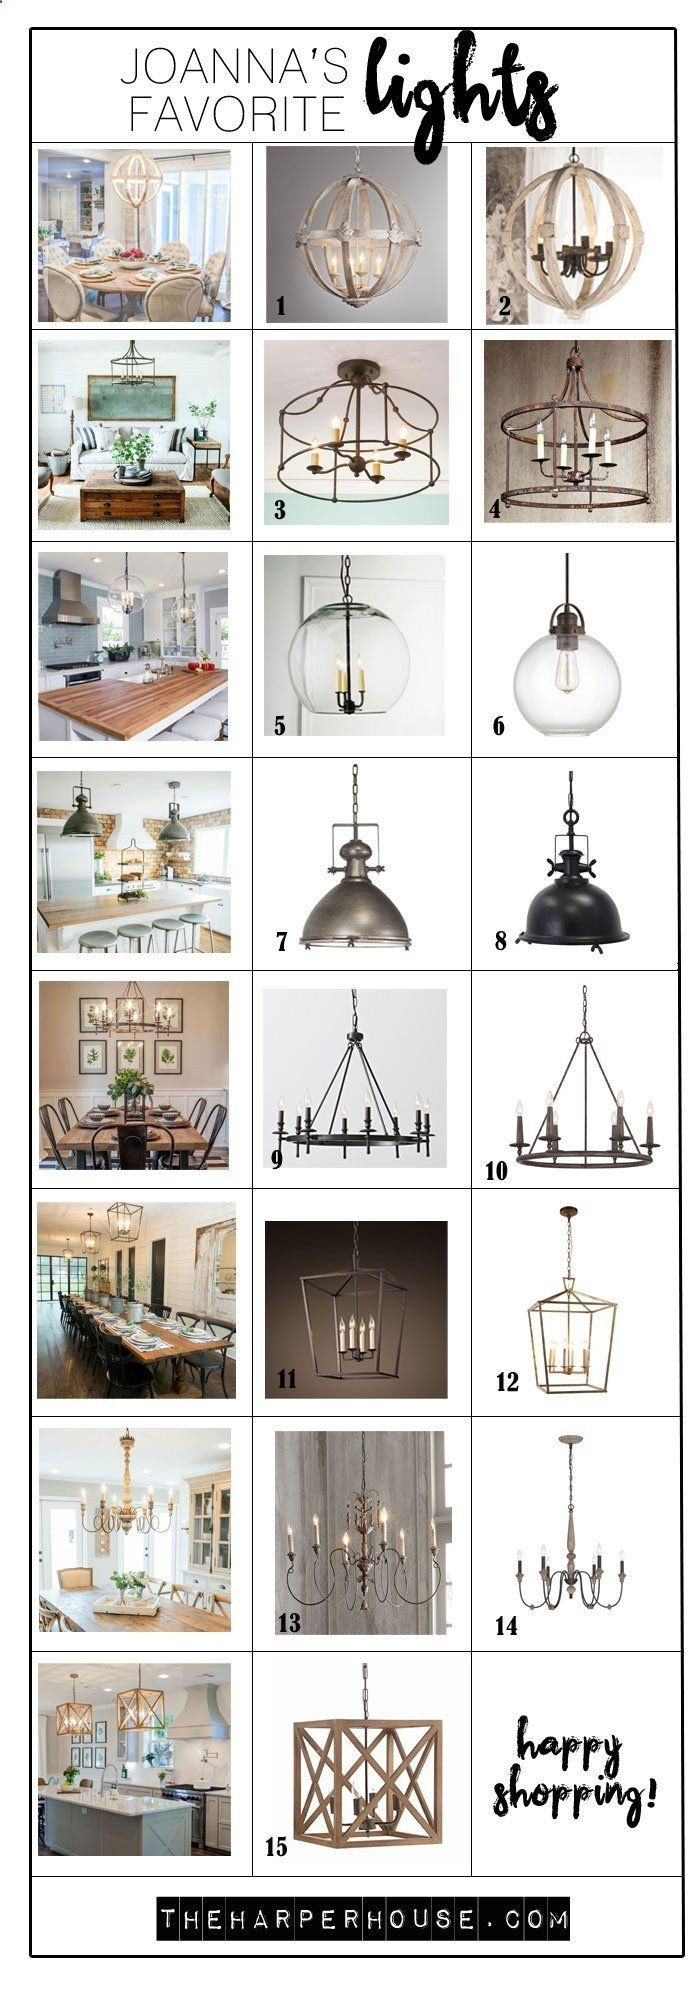 Check out these light fixtures used by Joanna Gaines on Fixer Upper. Shopping sources  links included! The Harper House